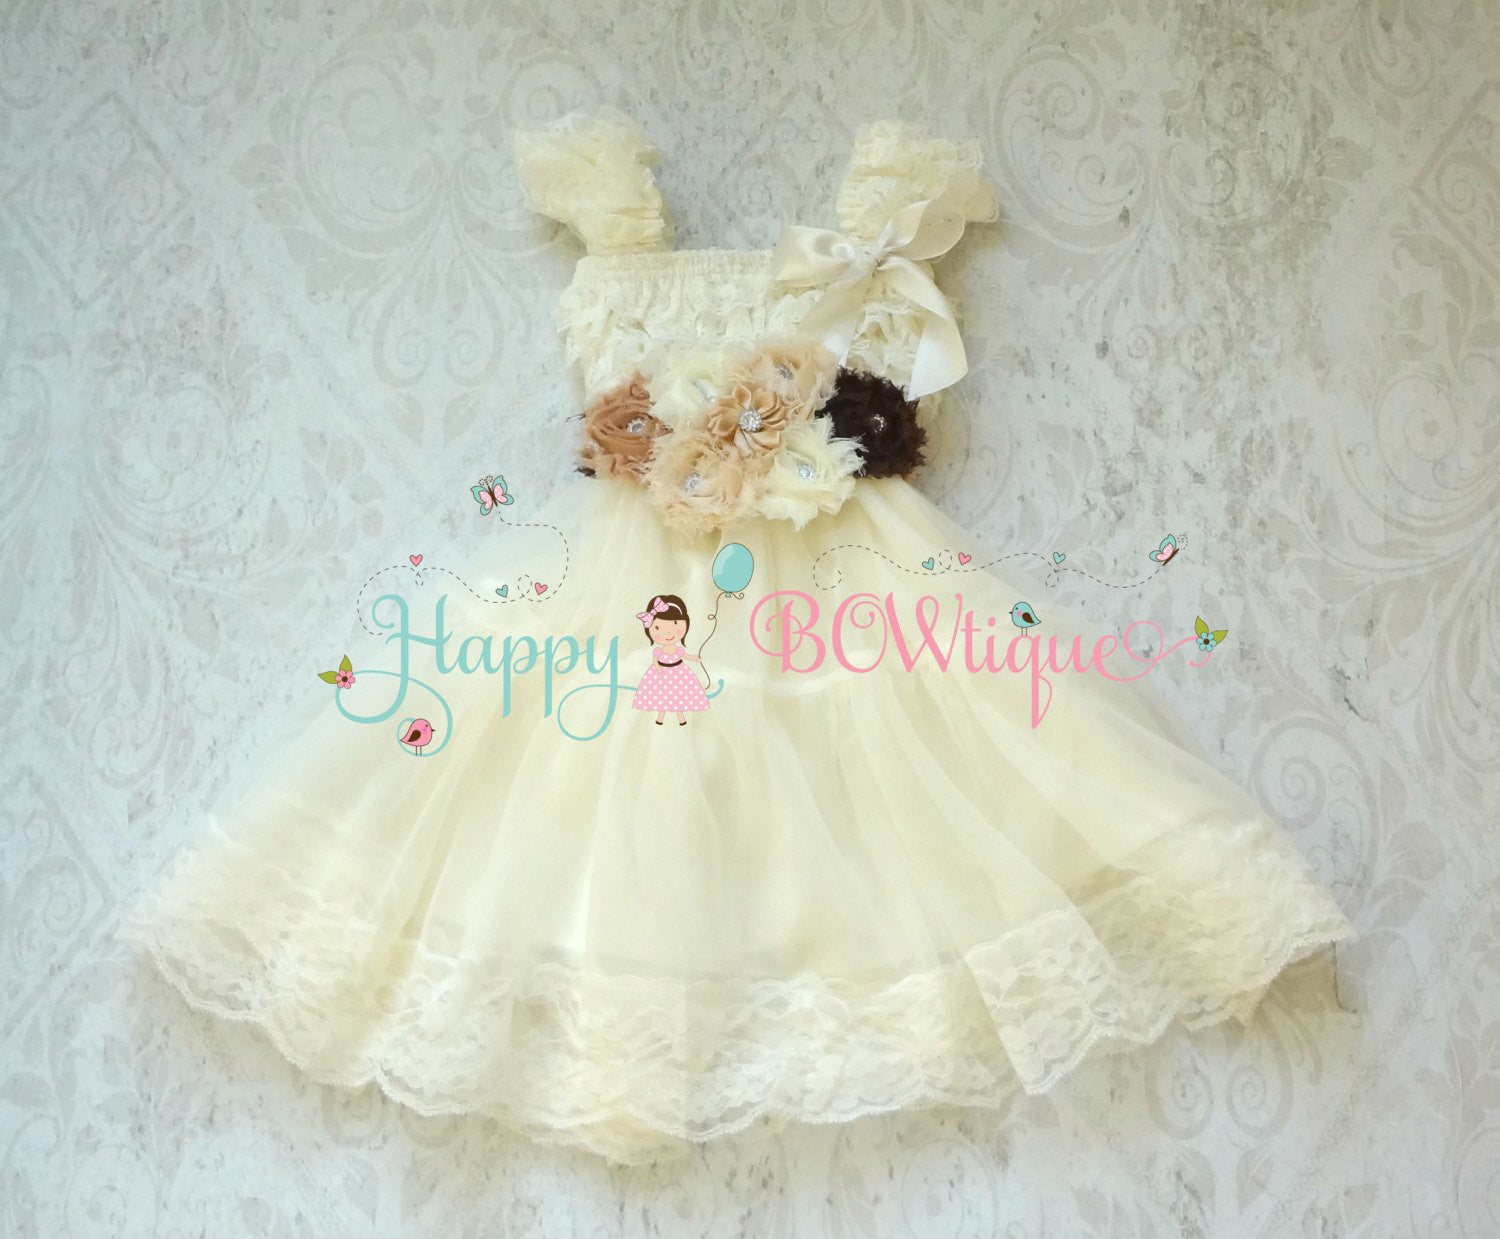 Rustic Flower girl dress/ Girl's Burlap Ivory Lace Chiffon Dress set - Happy BOWtique - children's clothing, Baby Girl clothing